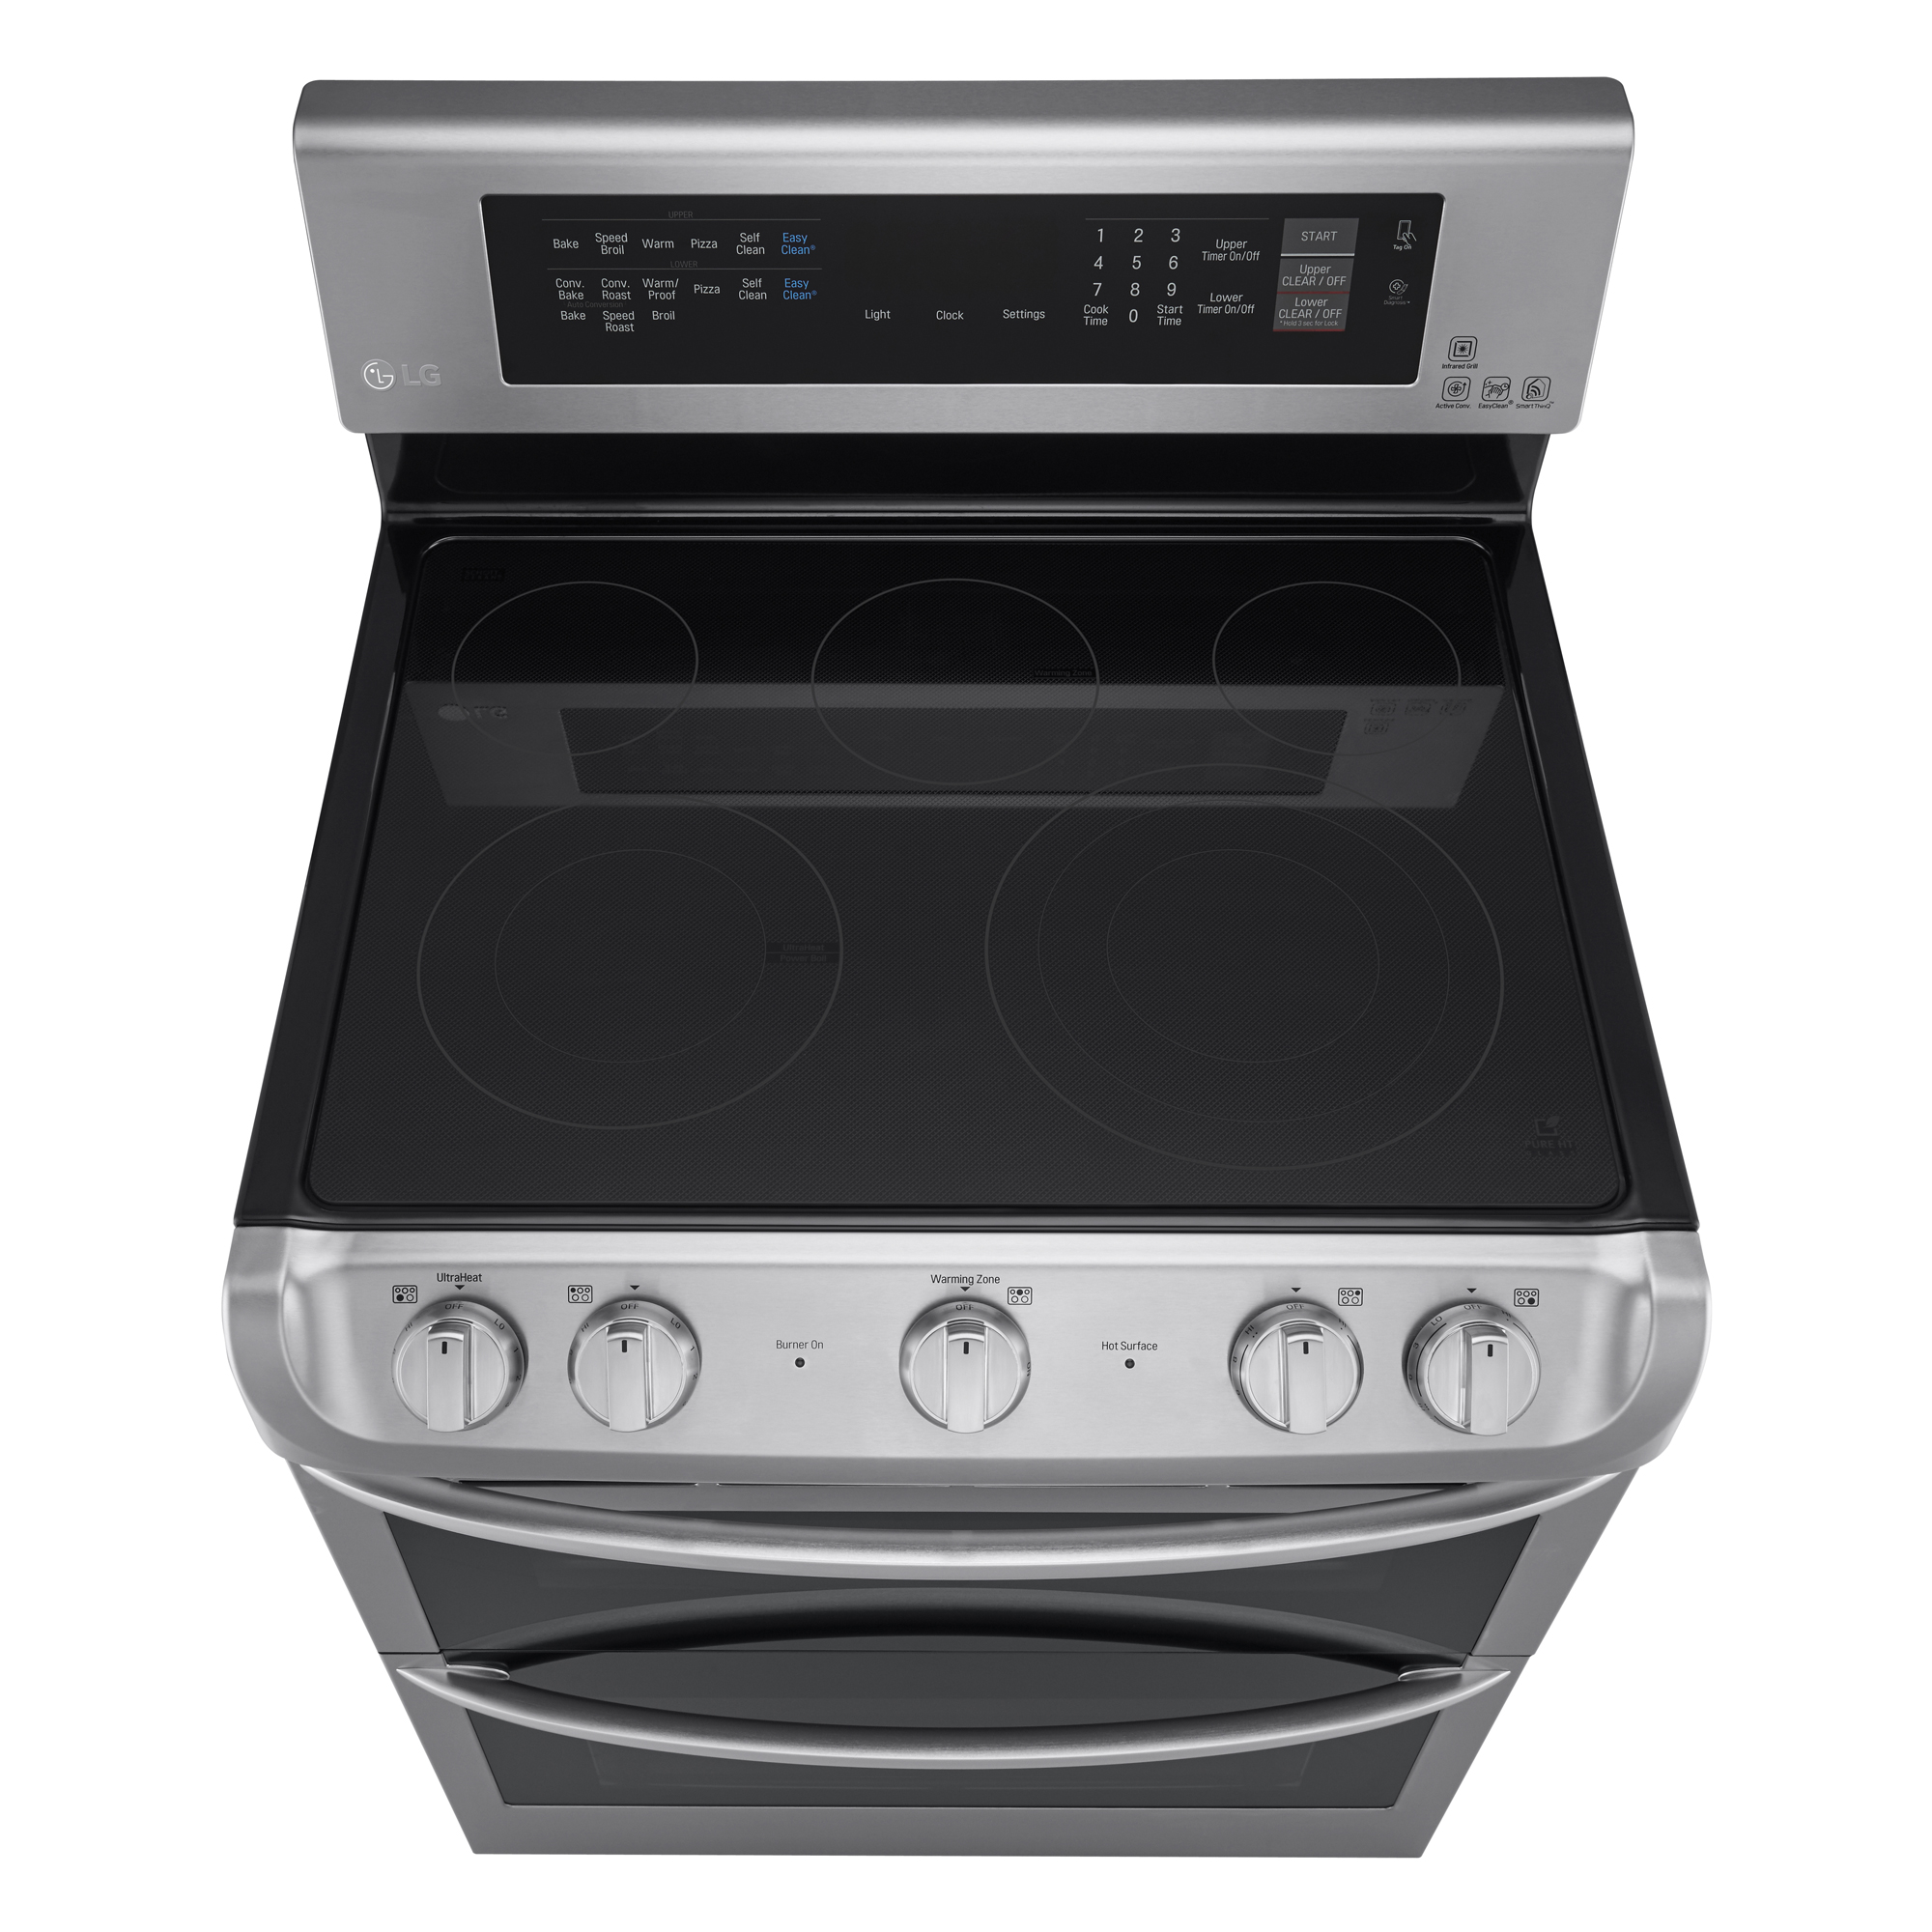 LG LDE4415ST 7.3 cu. ft. Double-Oven Electric Range w/ProBake Convection™ & EasyClean® – Stainless Steel